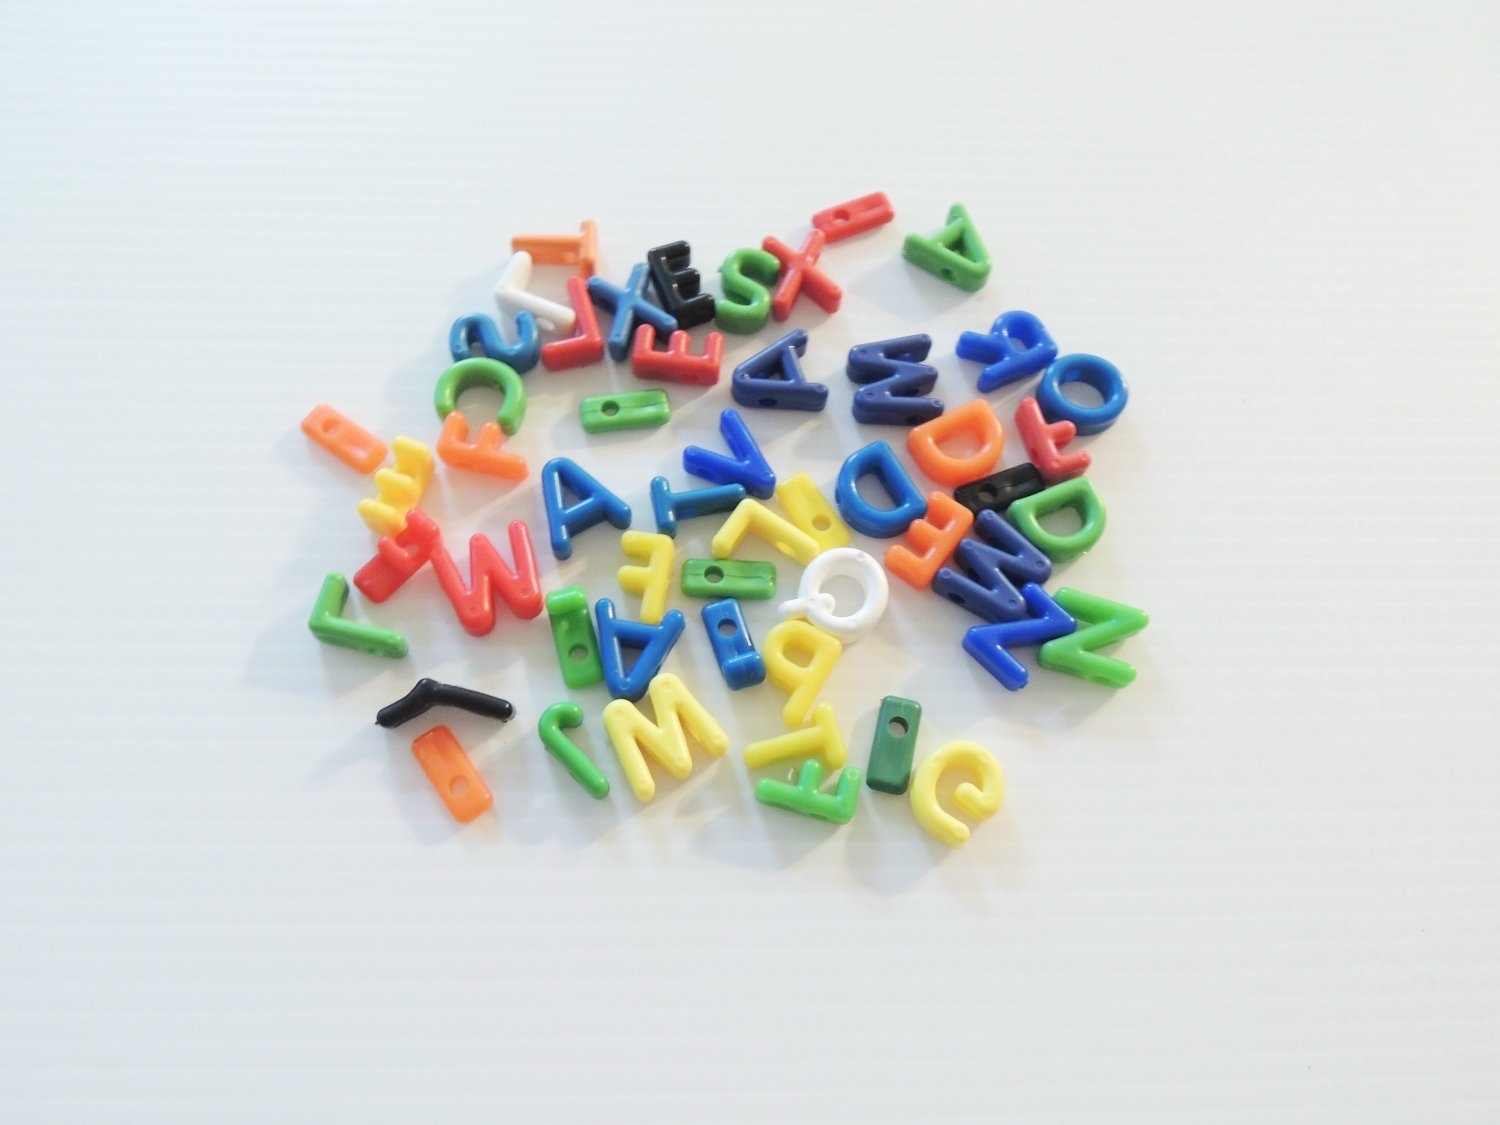 50 Letter Beads bird toy parts parrots cages perch